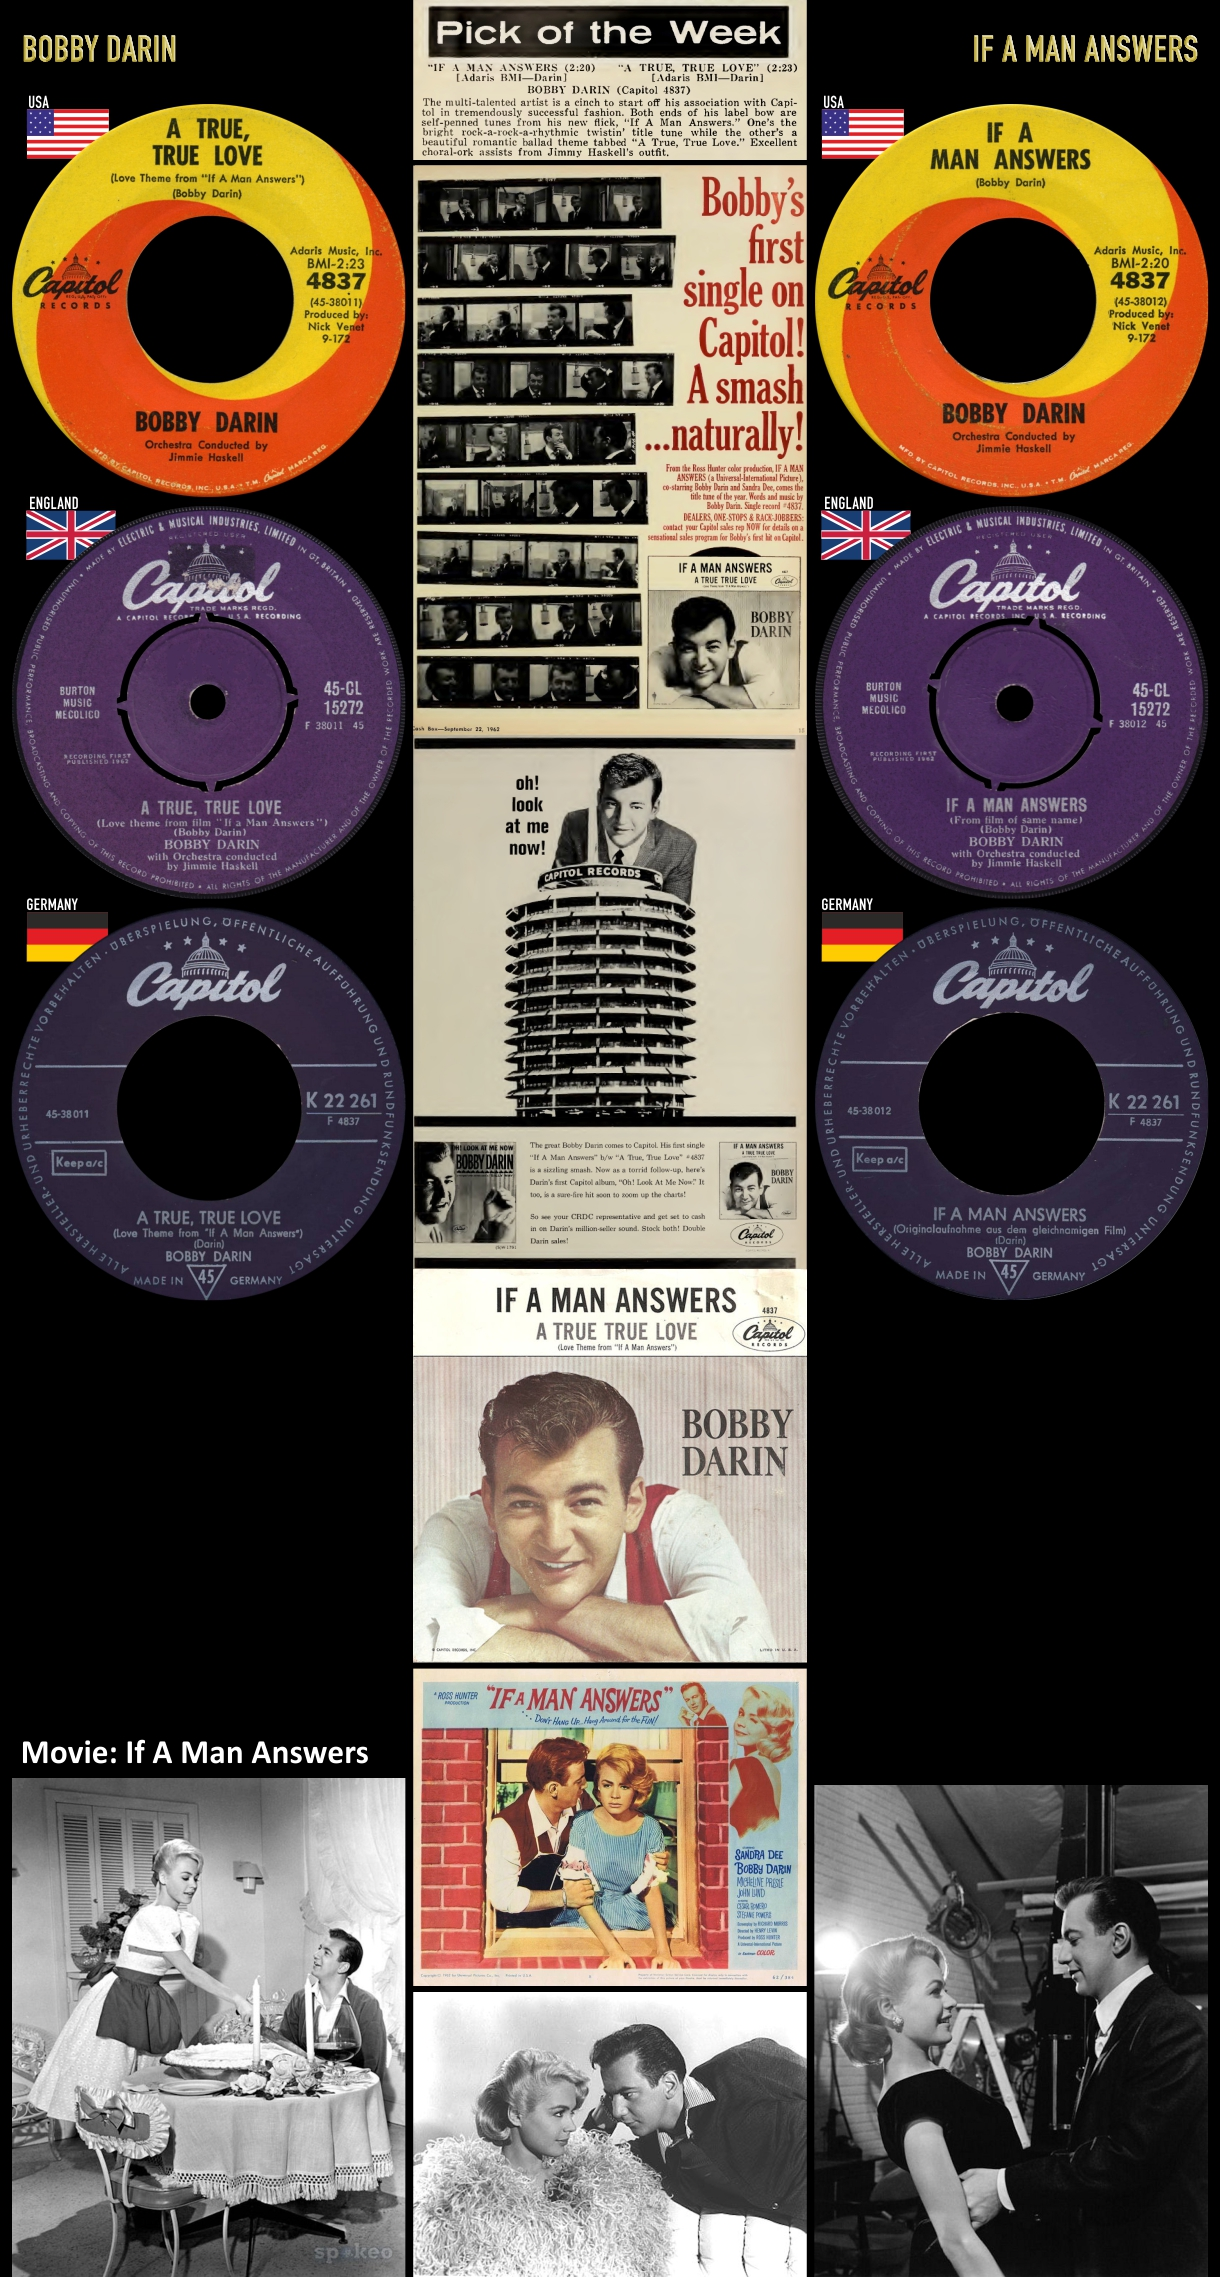 620929_Bobby Darin_If A Man Answers